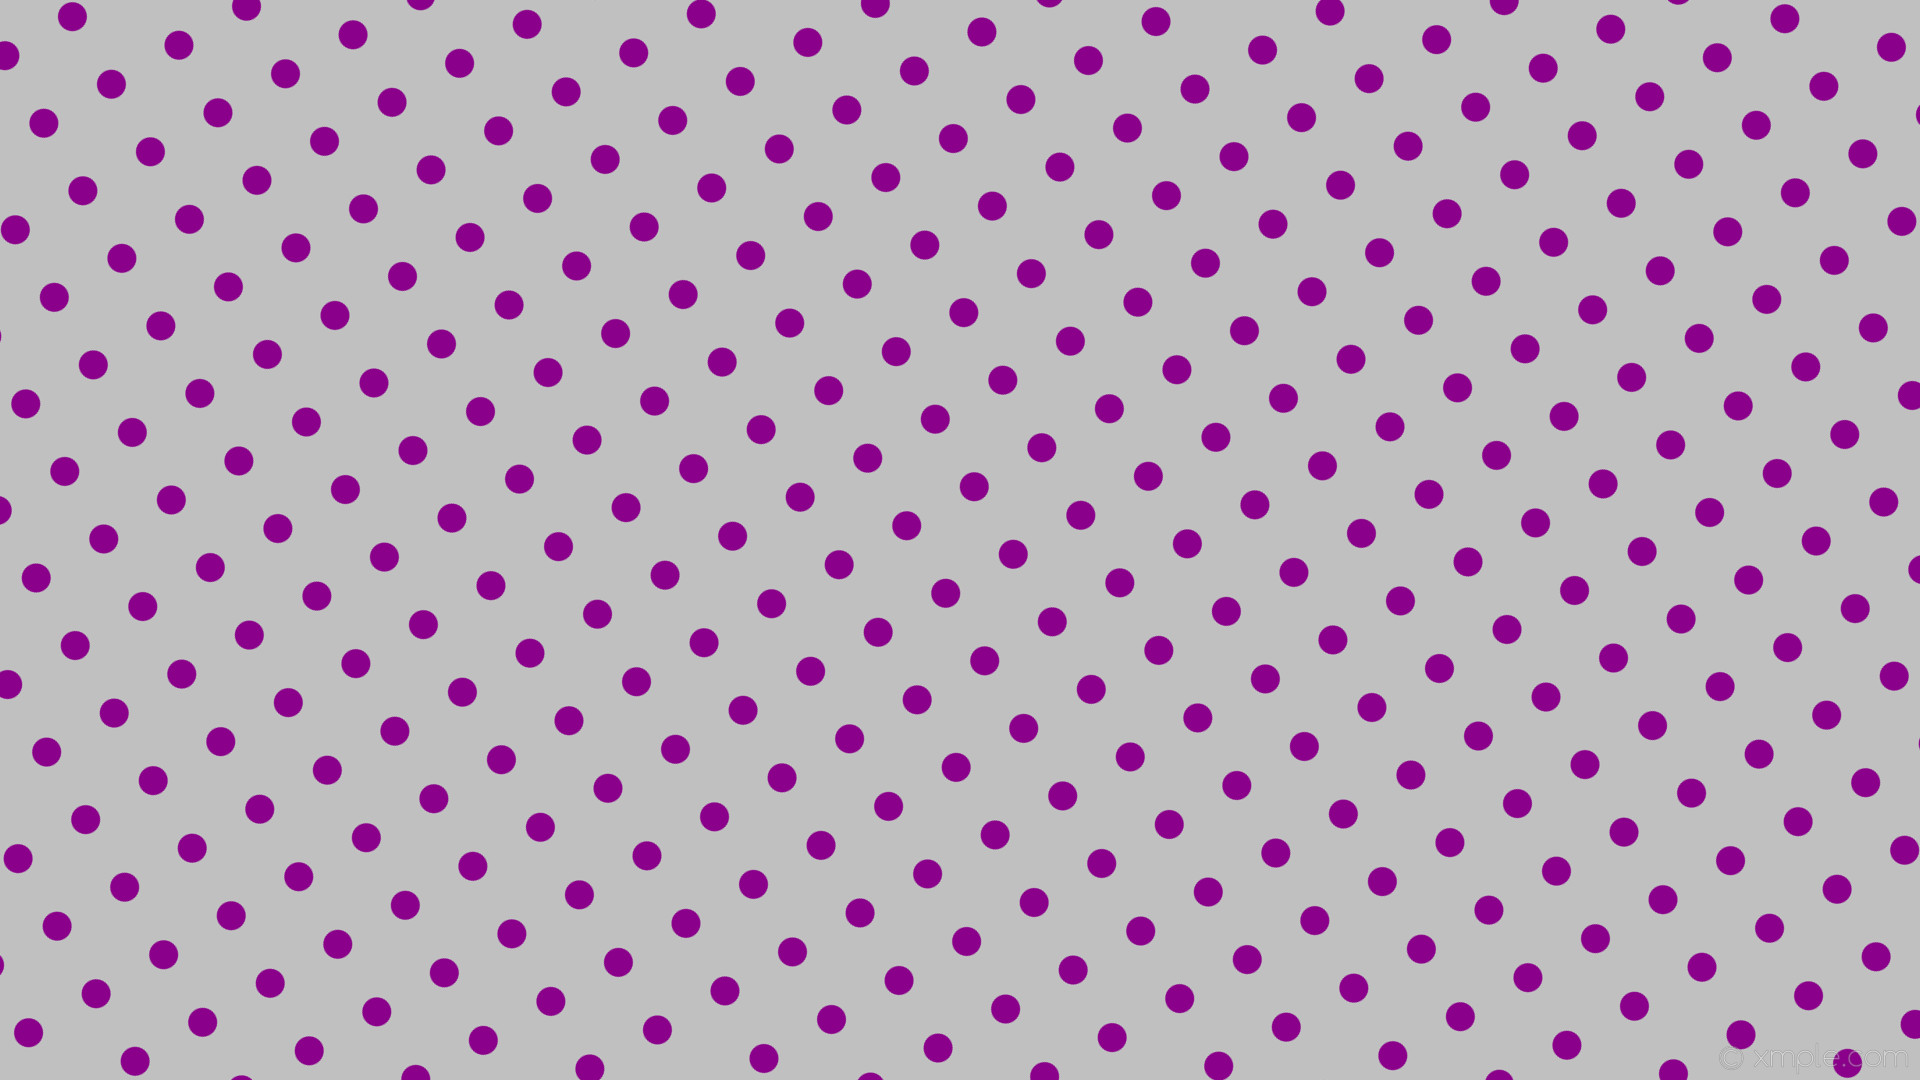 1920x1080 wallpaper polka spots dots purple grey silver dark magenta #c0c0c0 #8b008b  210° 29px